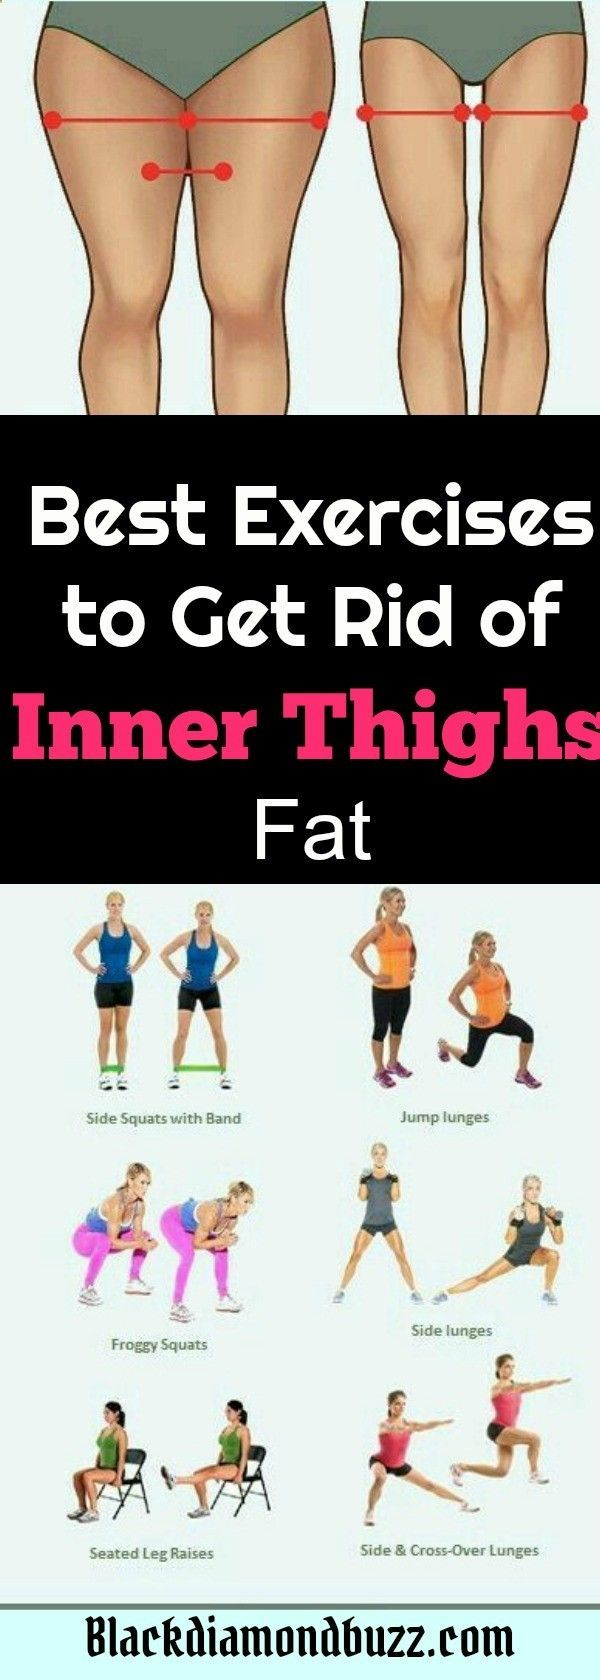 how to lose thigh fat without exercise fast